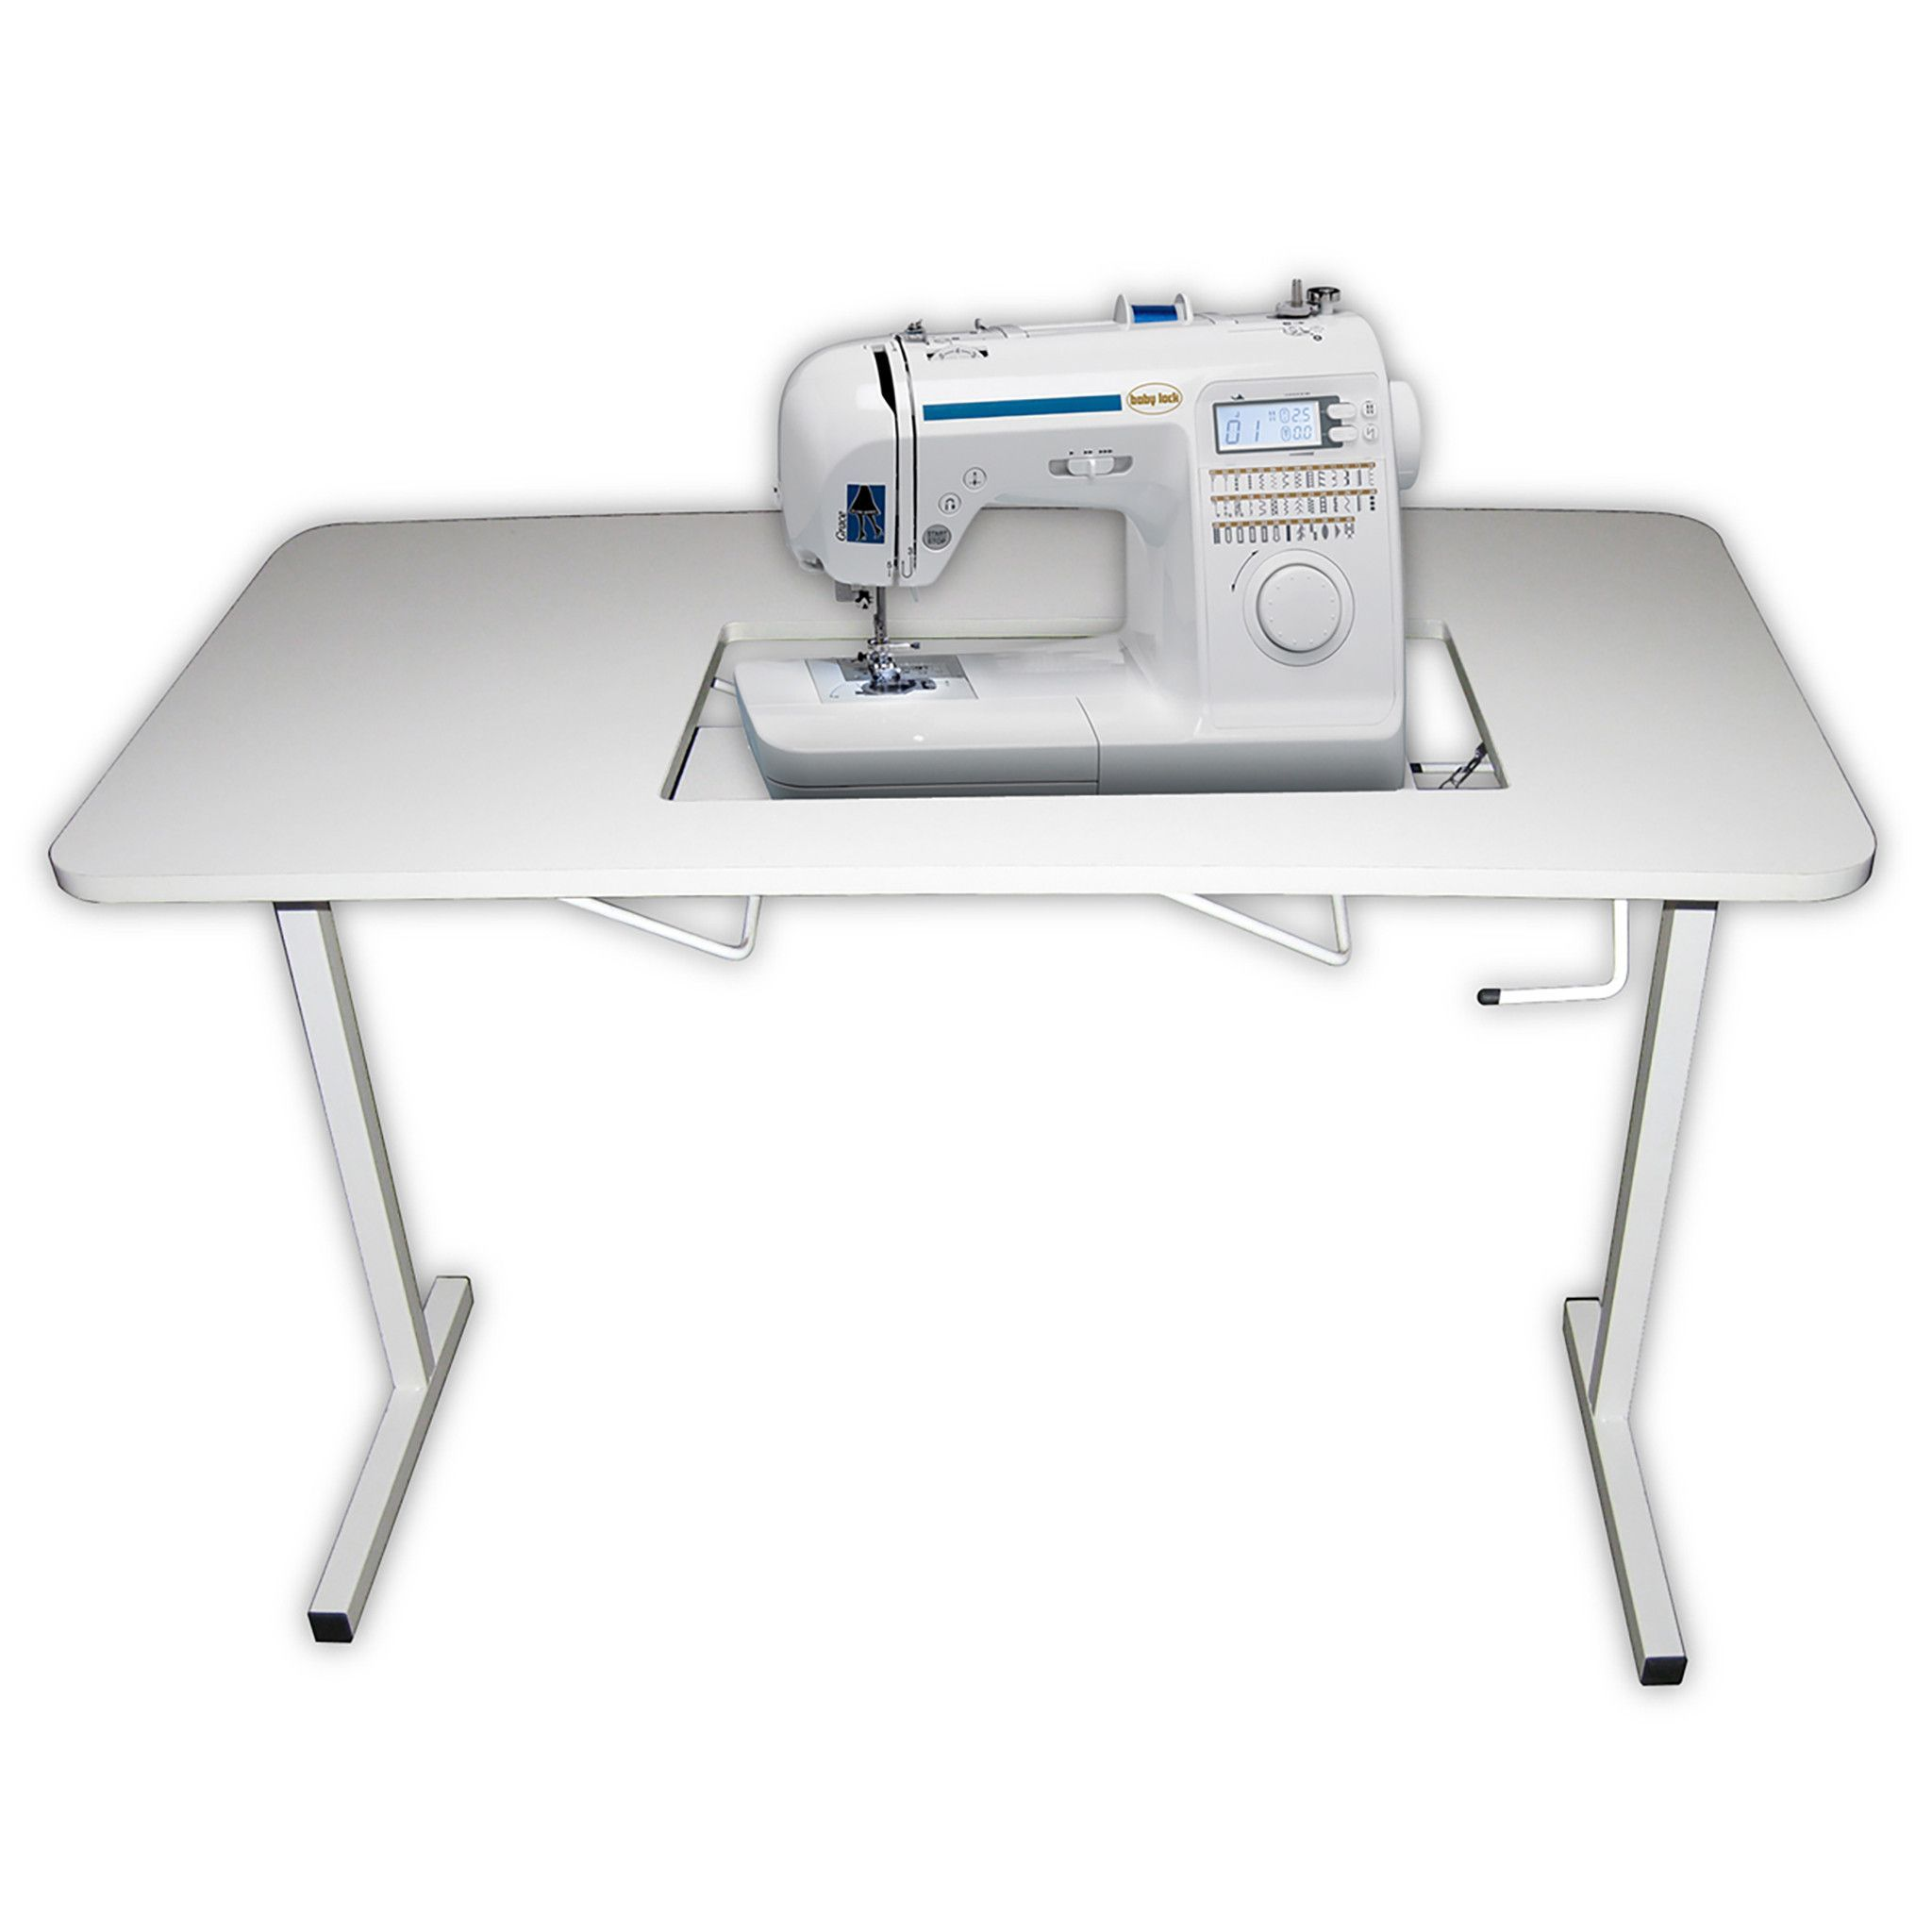 - Folding Portable Sewing Table Folding Sewing Table, Sewing Table